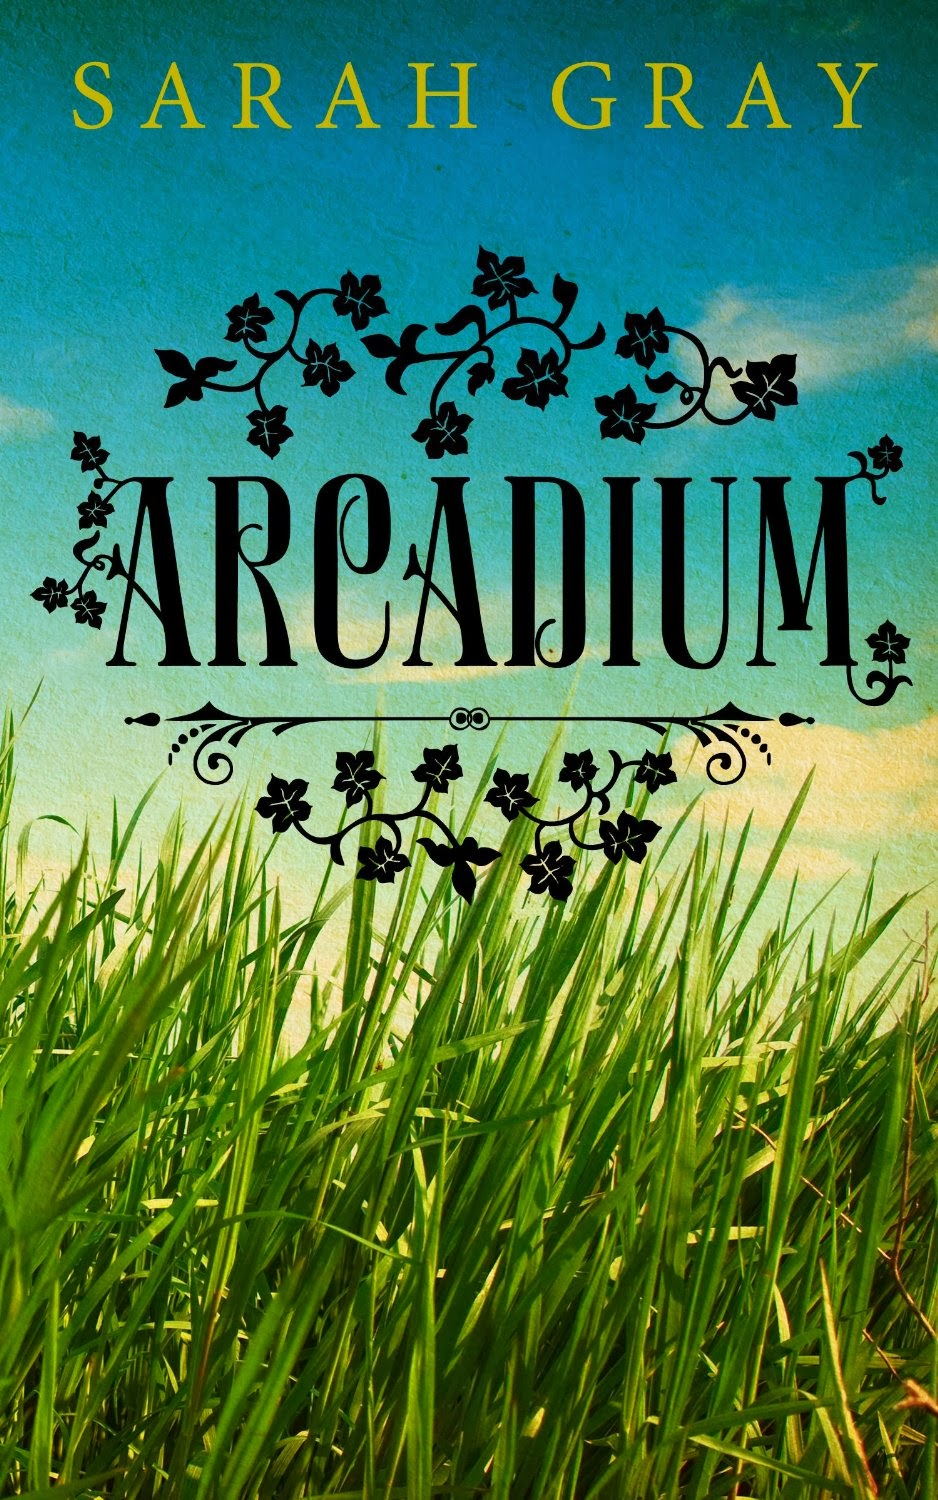 http://www.amazon.com/Arcadium-Sarah-Gray-ebook/dp/B008XNW3R4/?tag=juleromans-20